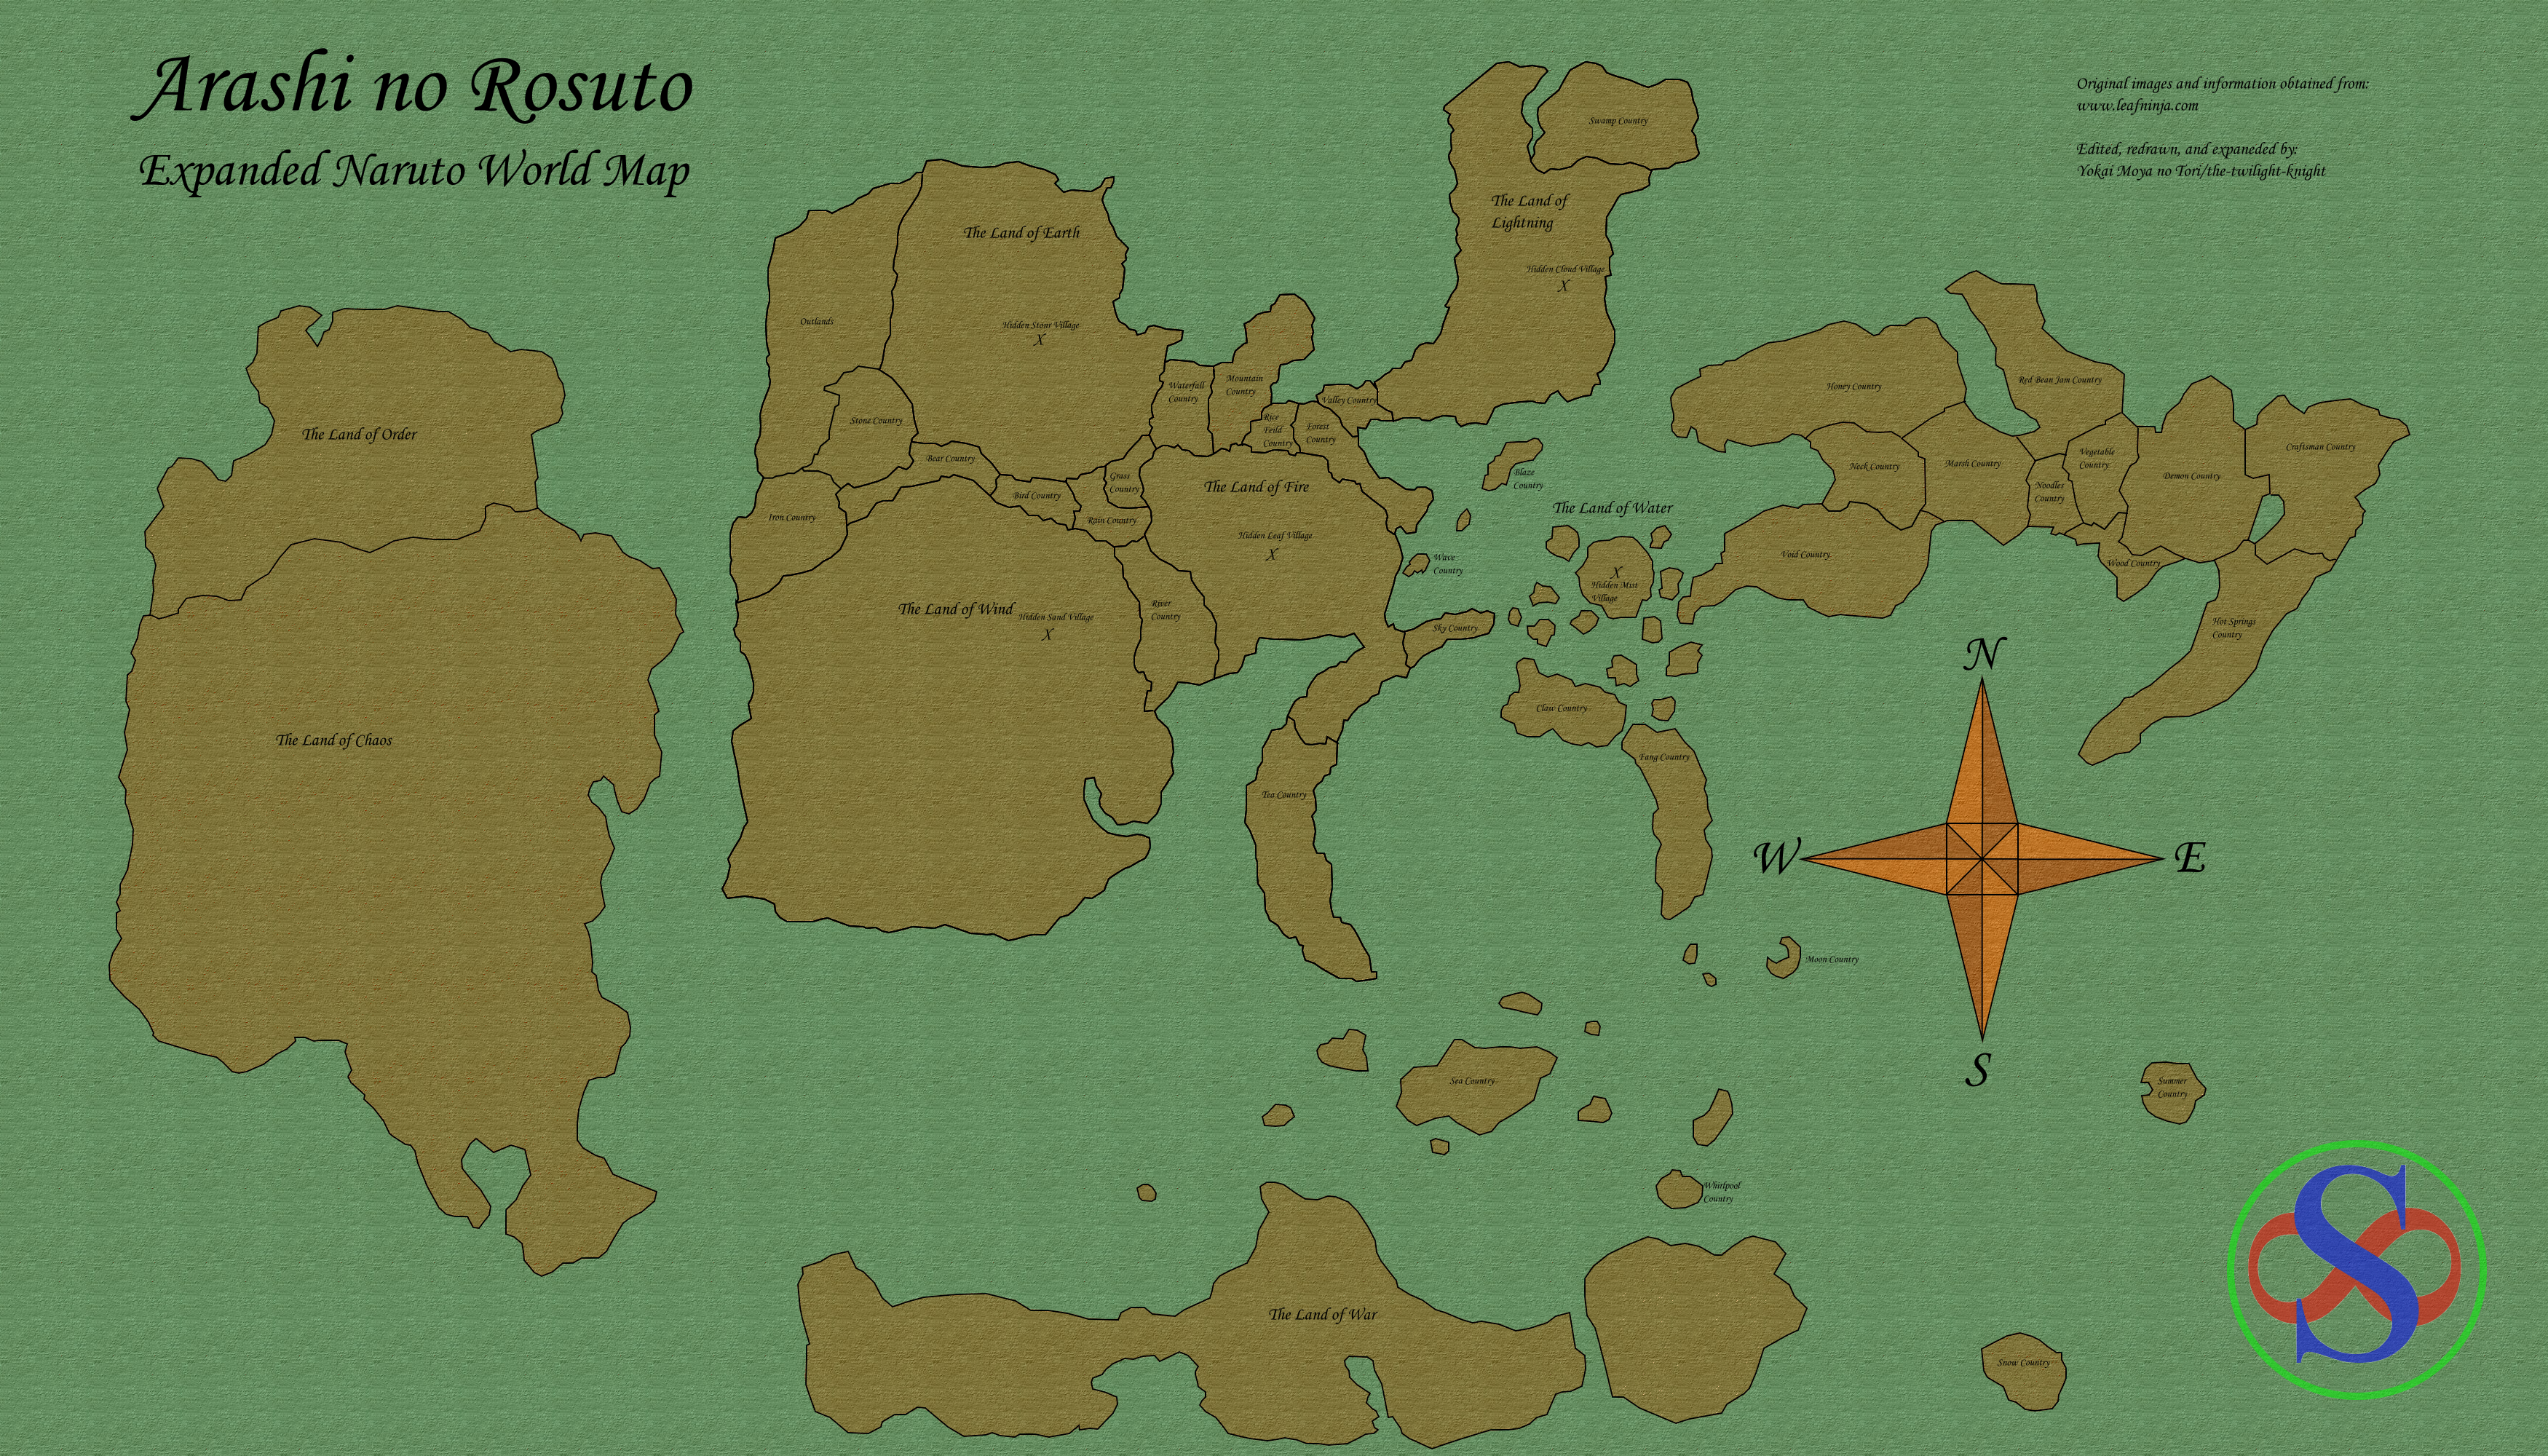 Elemental nations geographical map by xshadowrebirthx on deviantart naruto expanded world map by the twilight knight gumiabroncs